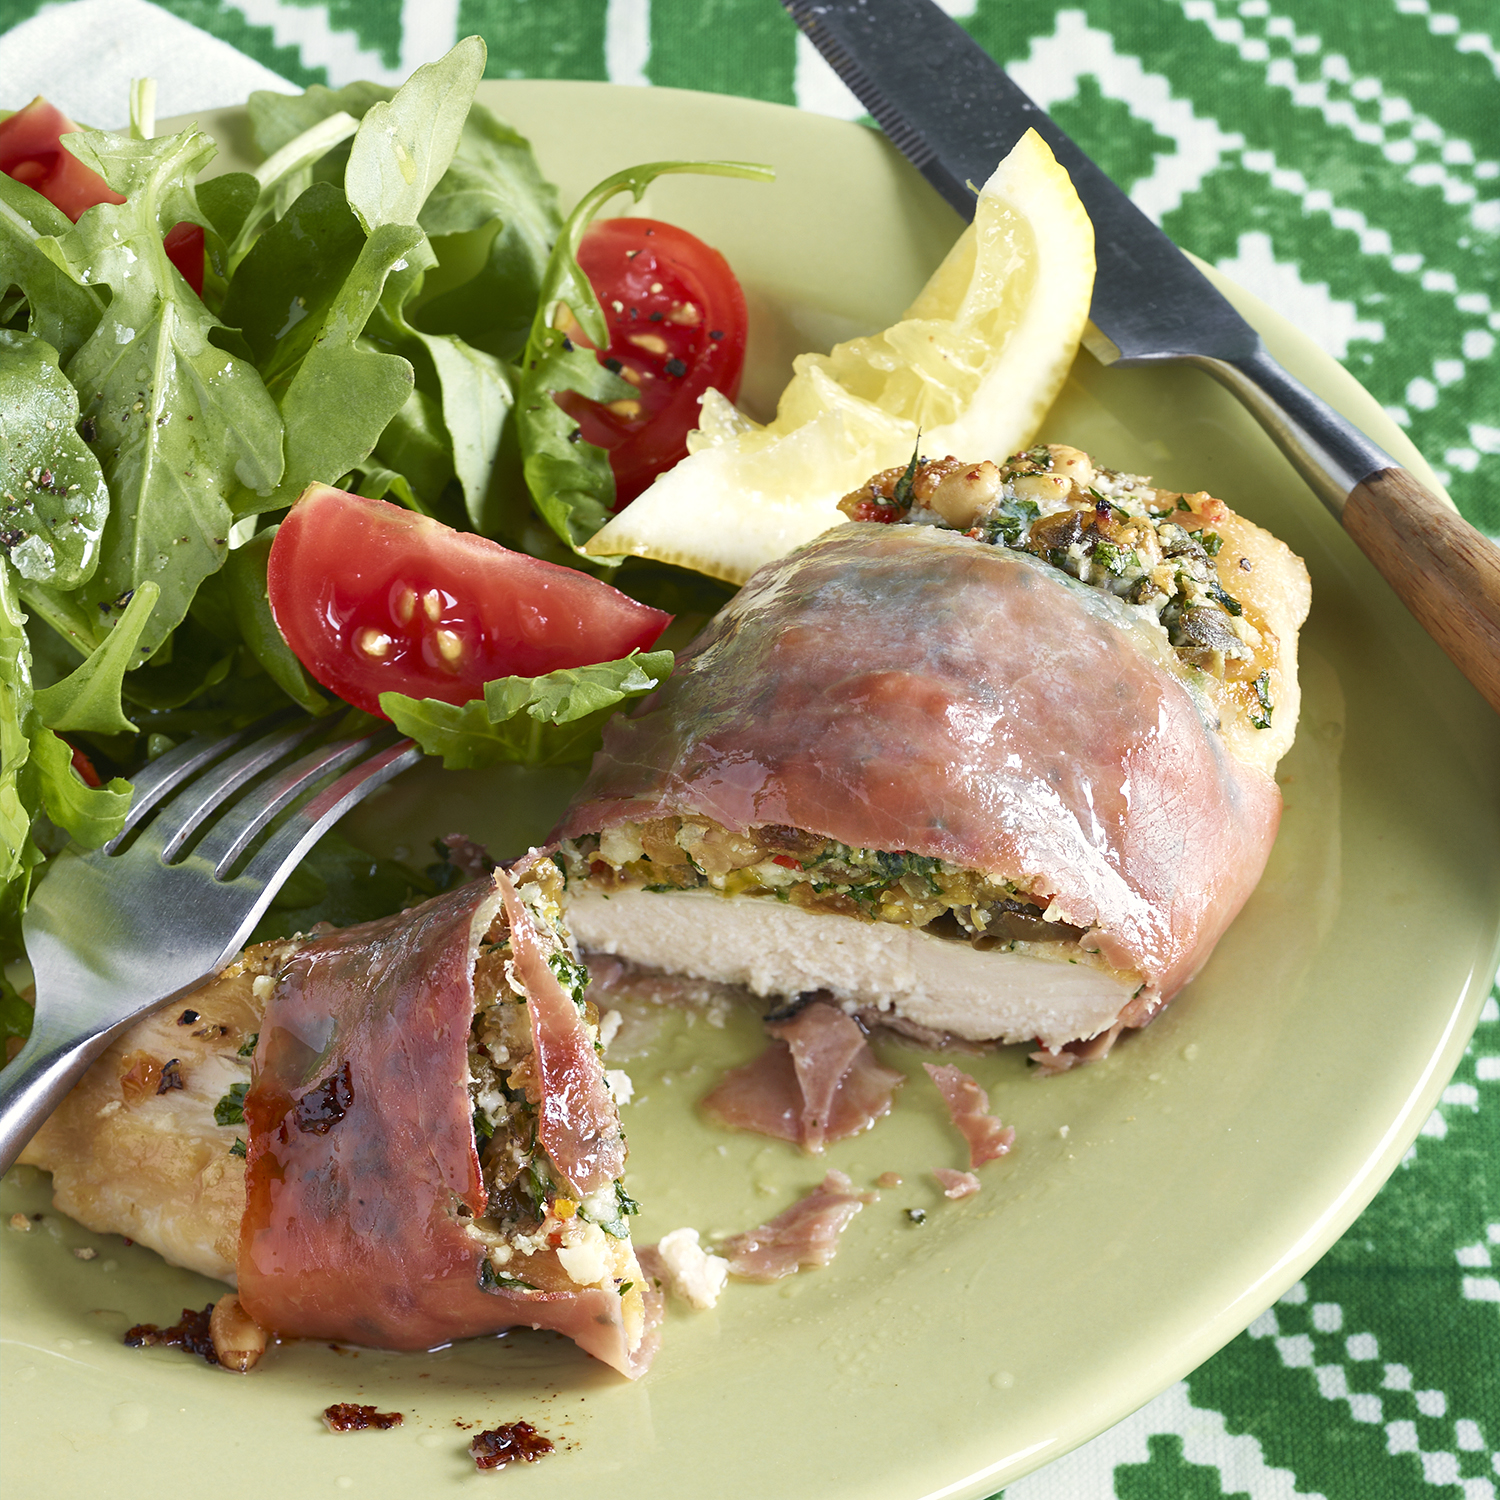 prosciutto-wrapped chicken cutlets with sweet and salty stuffing